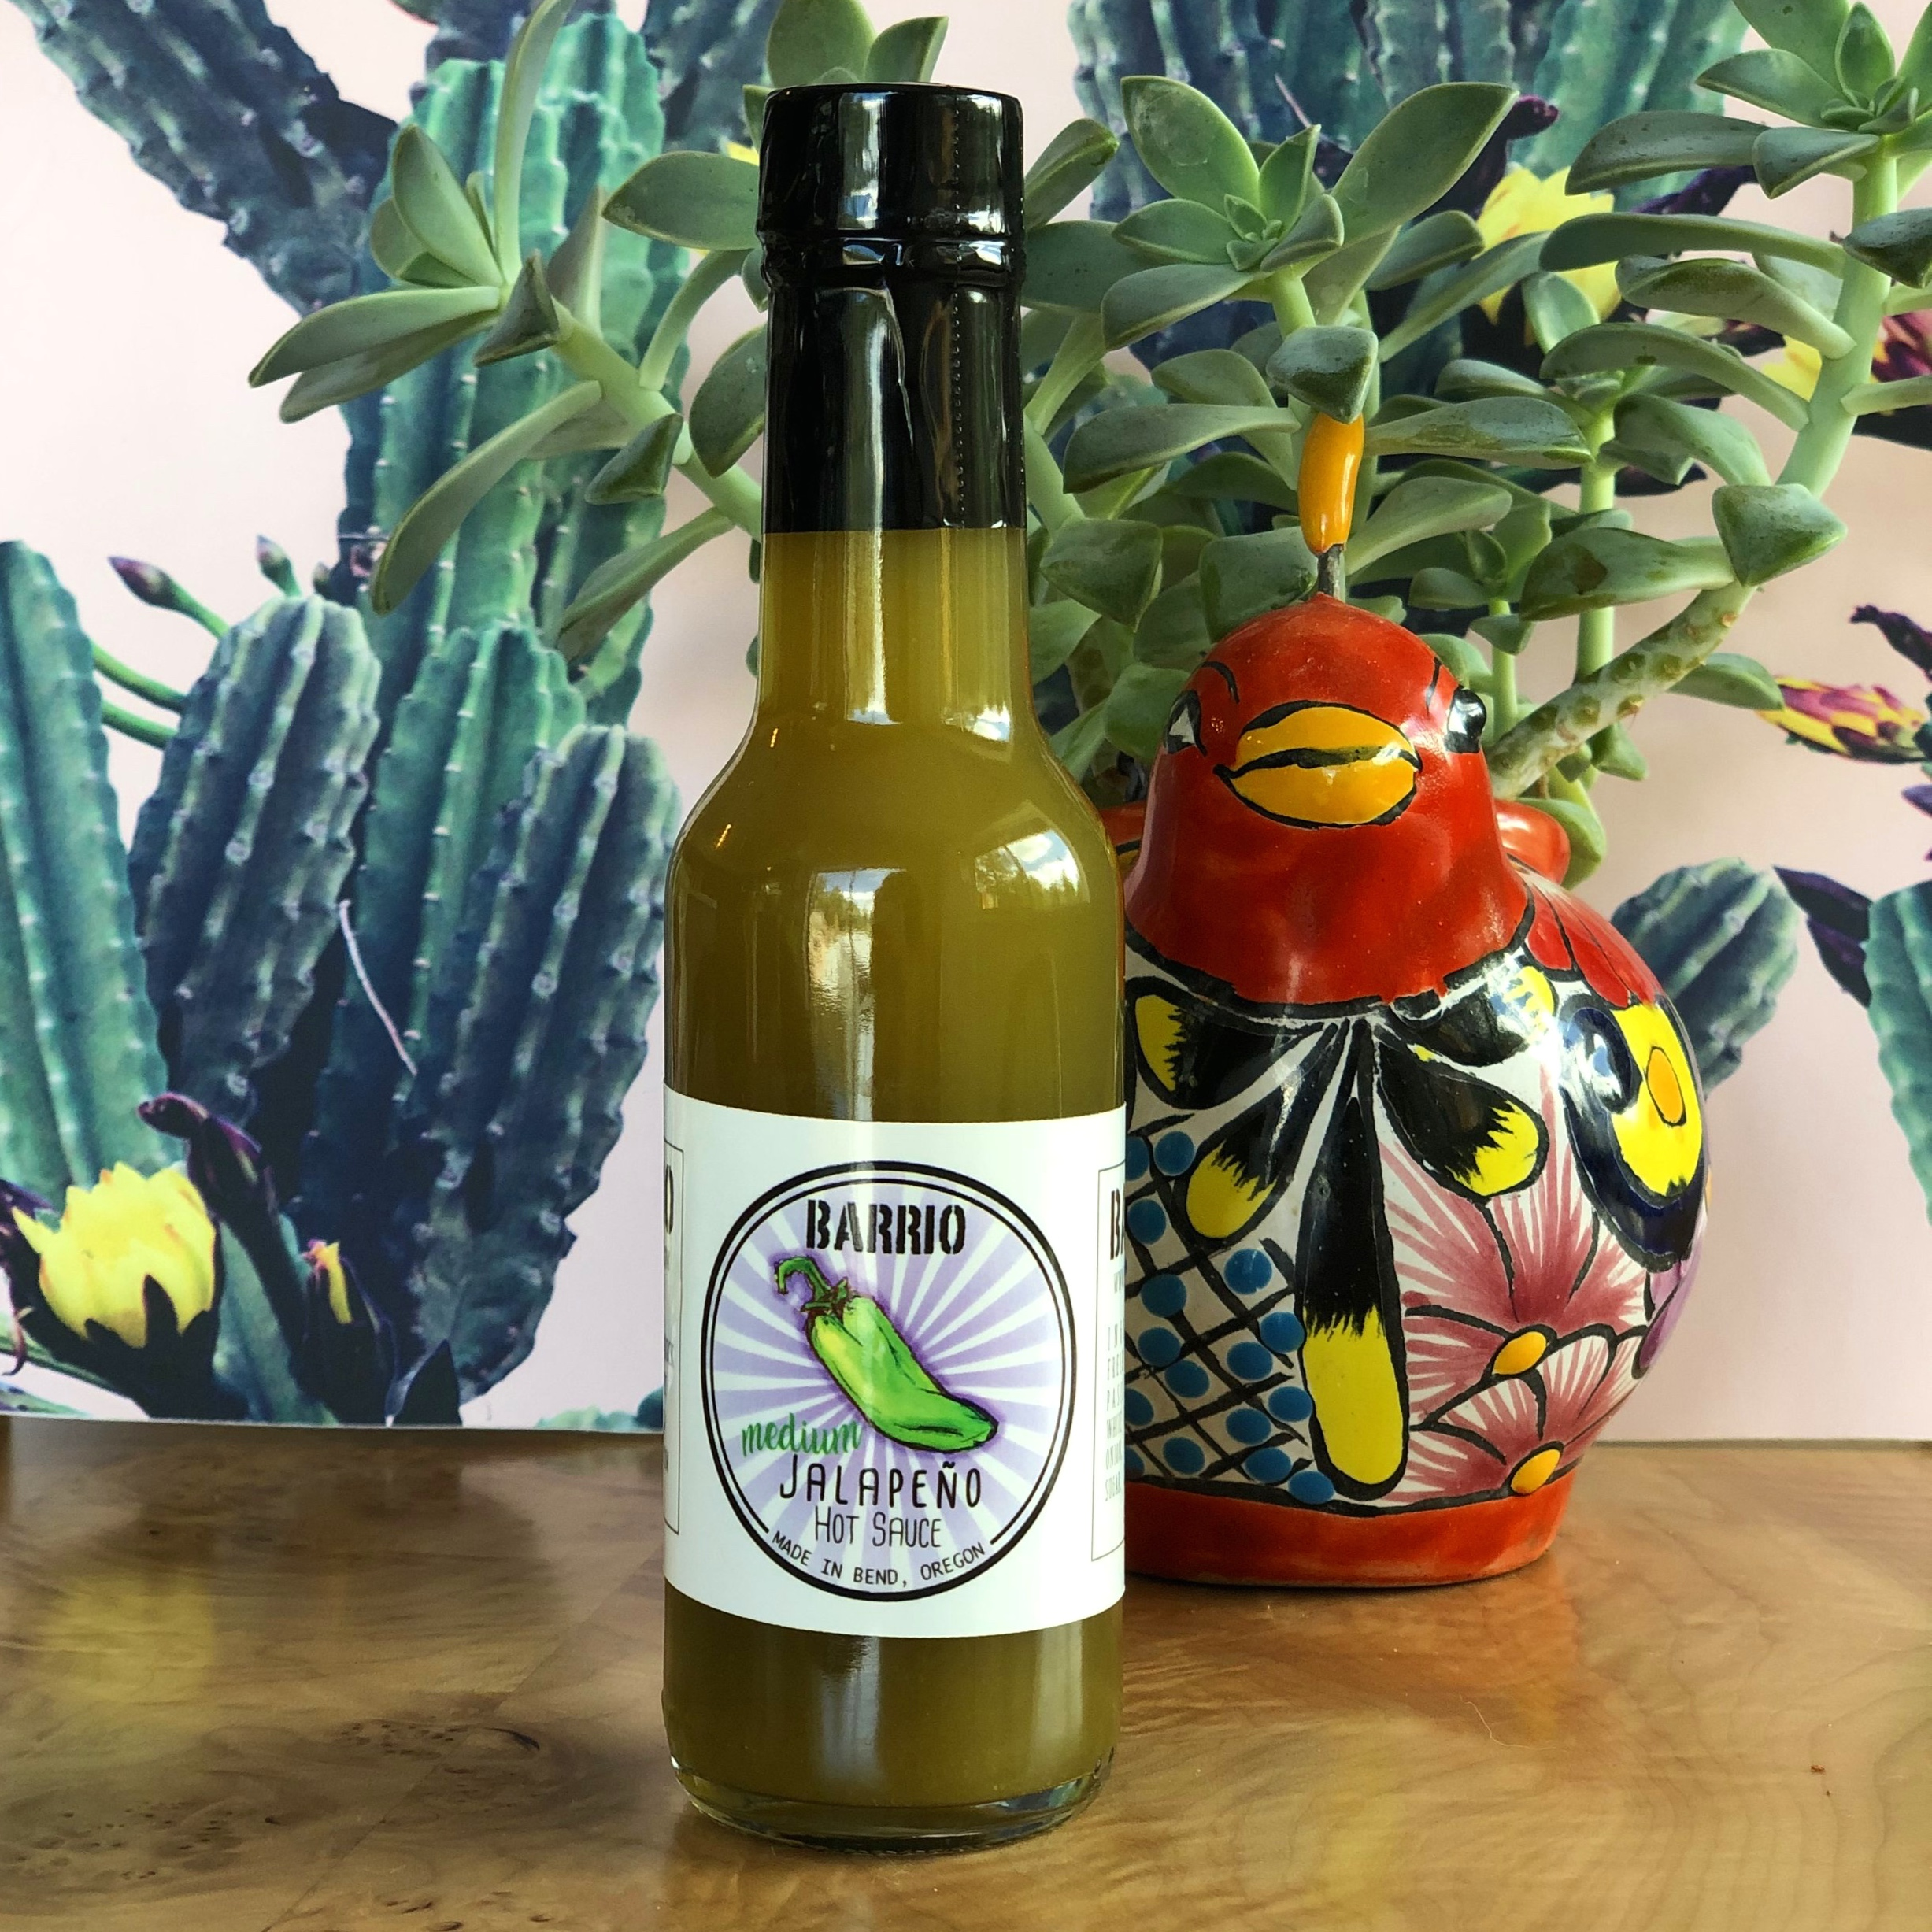 Barrio-Jalapeno-Hot-Sauce